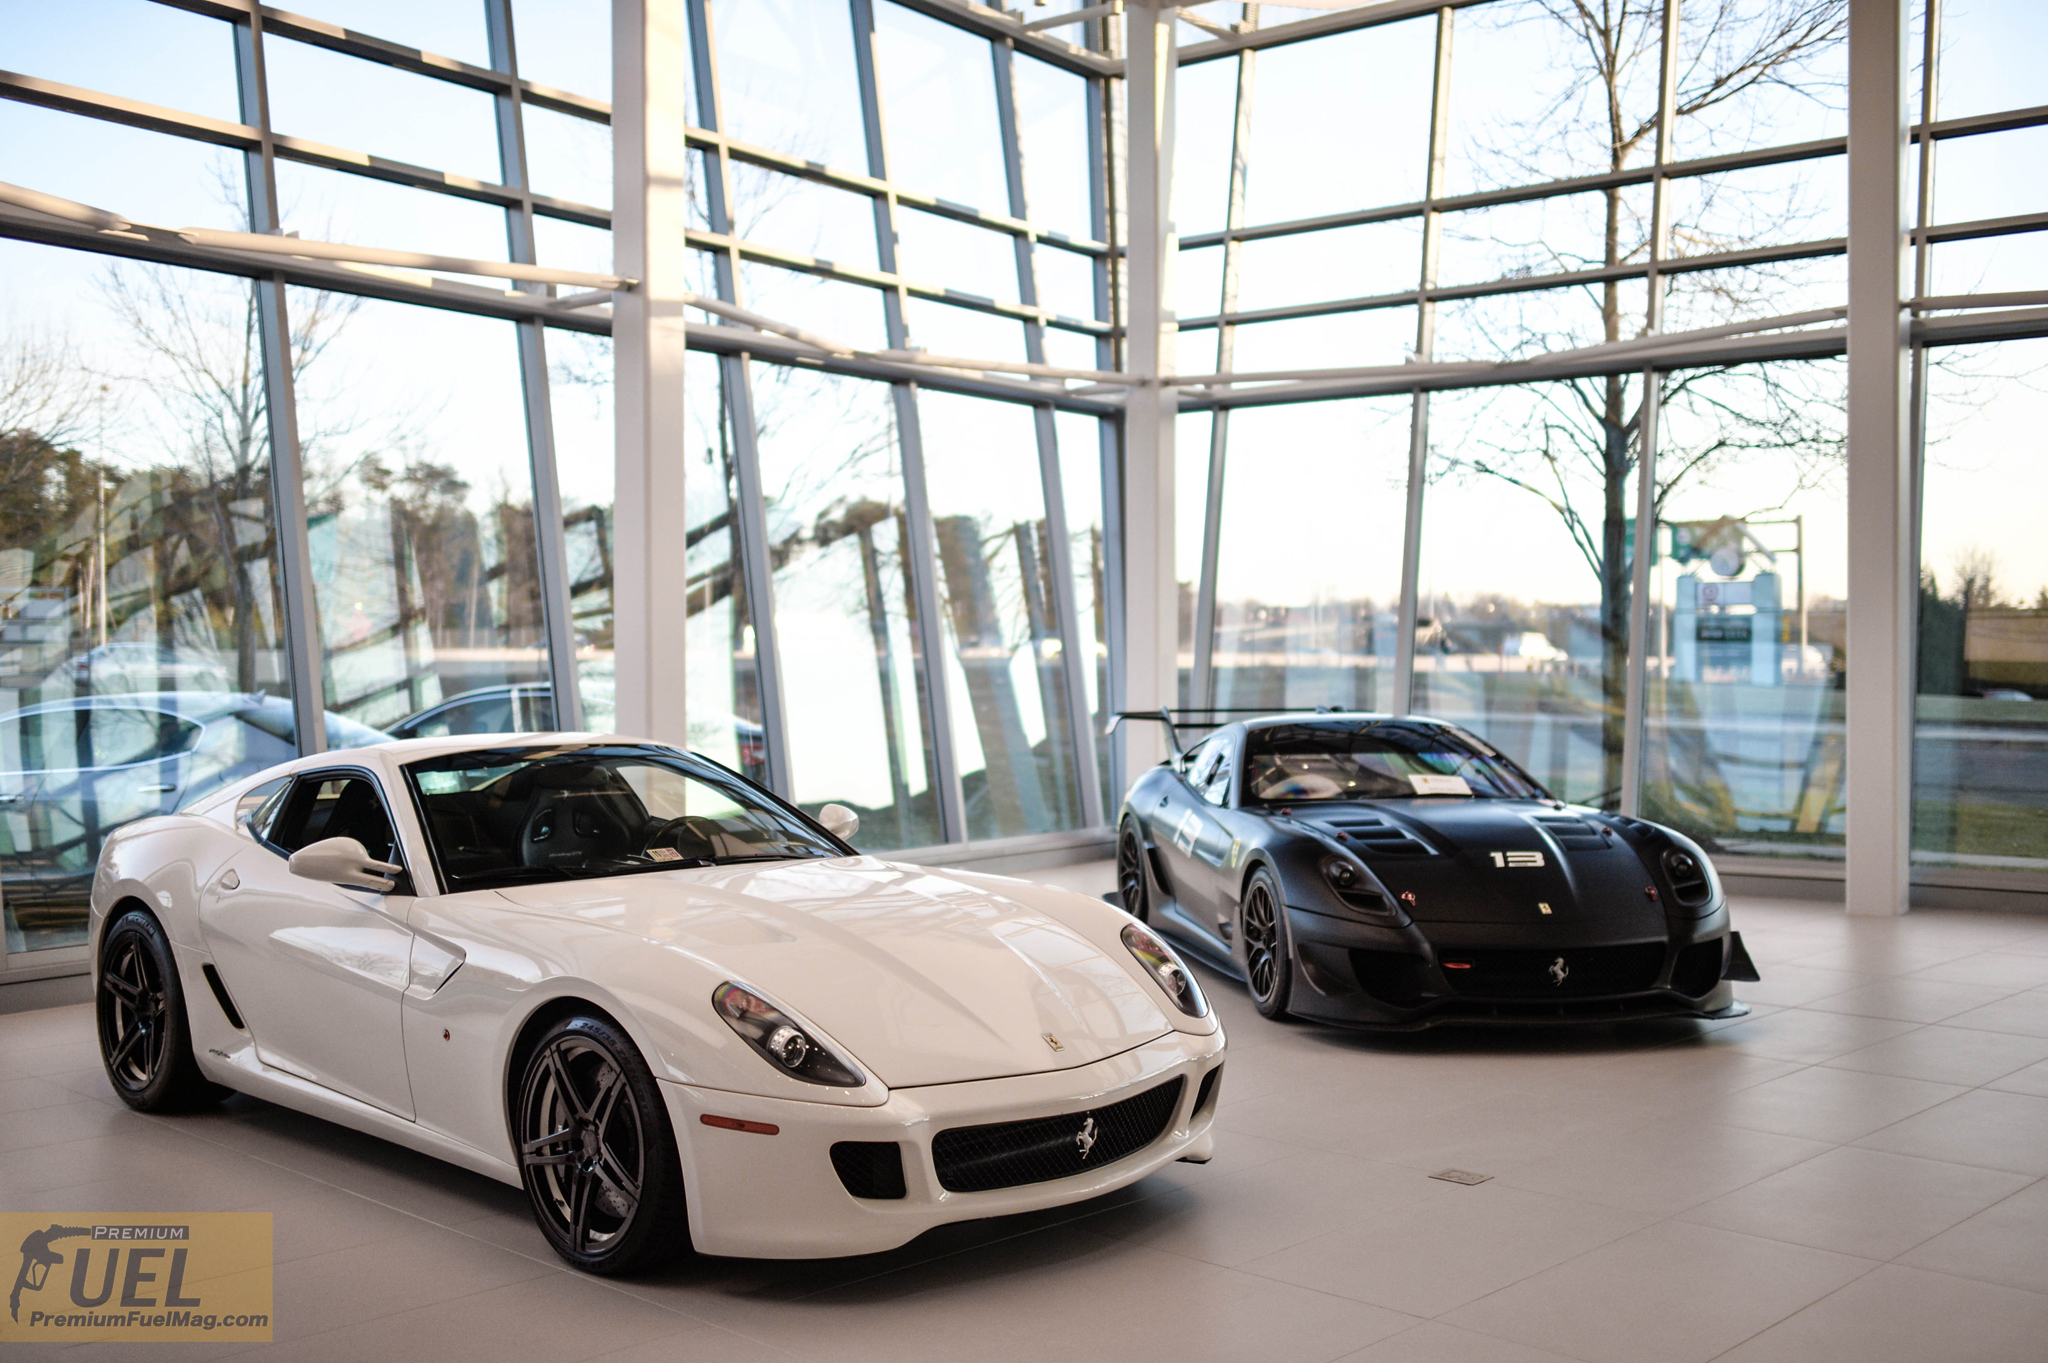 Up Close with rare Ferraris – Premium Fuel Magazine